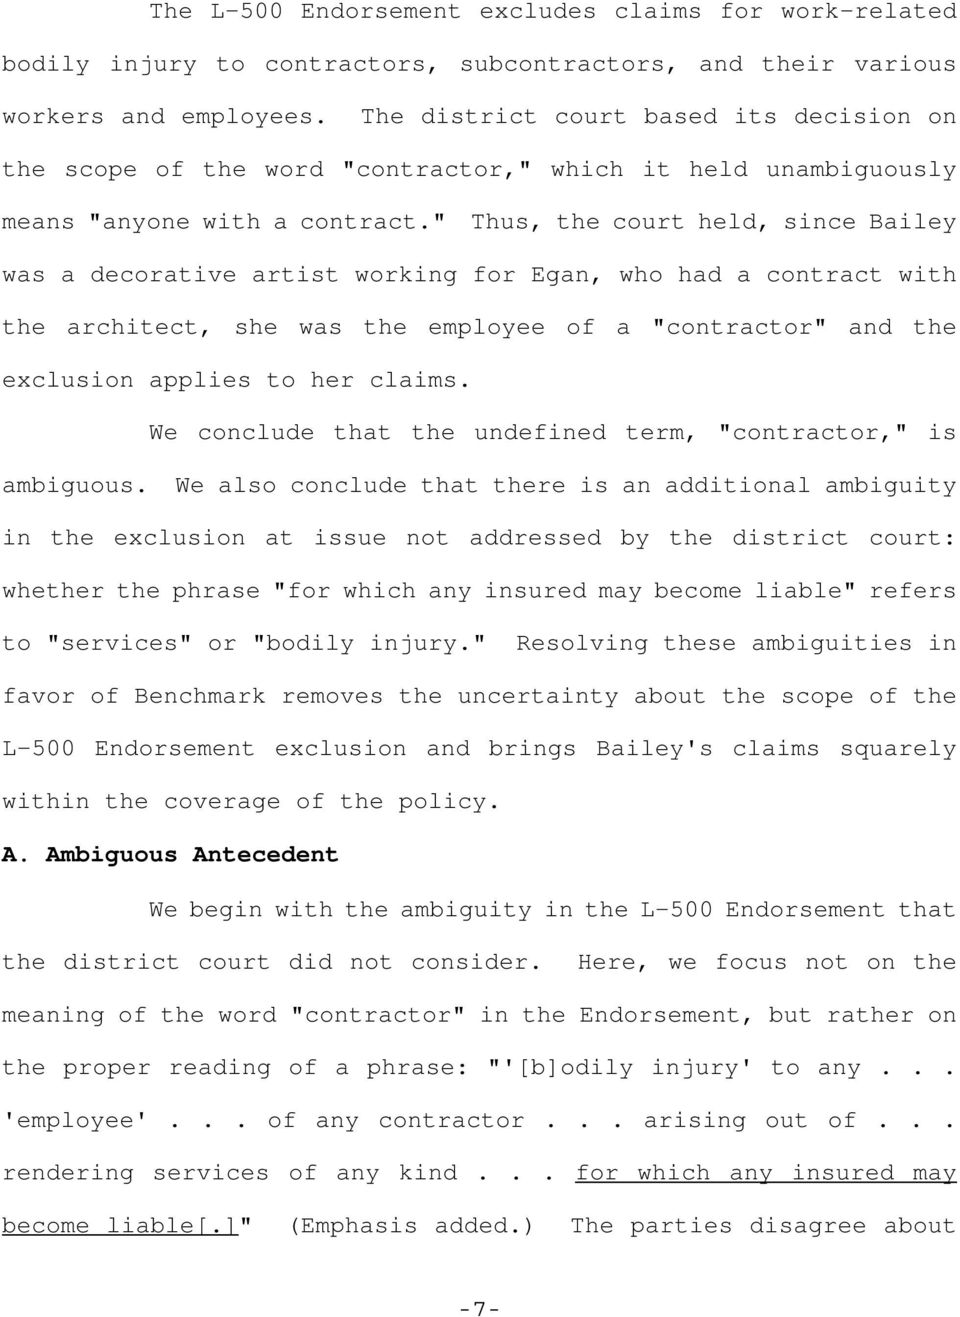 """ Thus, the court held, since Bailey was a decorative artist working for Egan, who had a contract with the architect, she was the employee of a ""contractor"" and the exclusion applies to her claims."